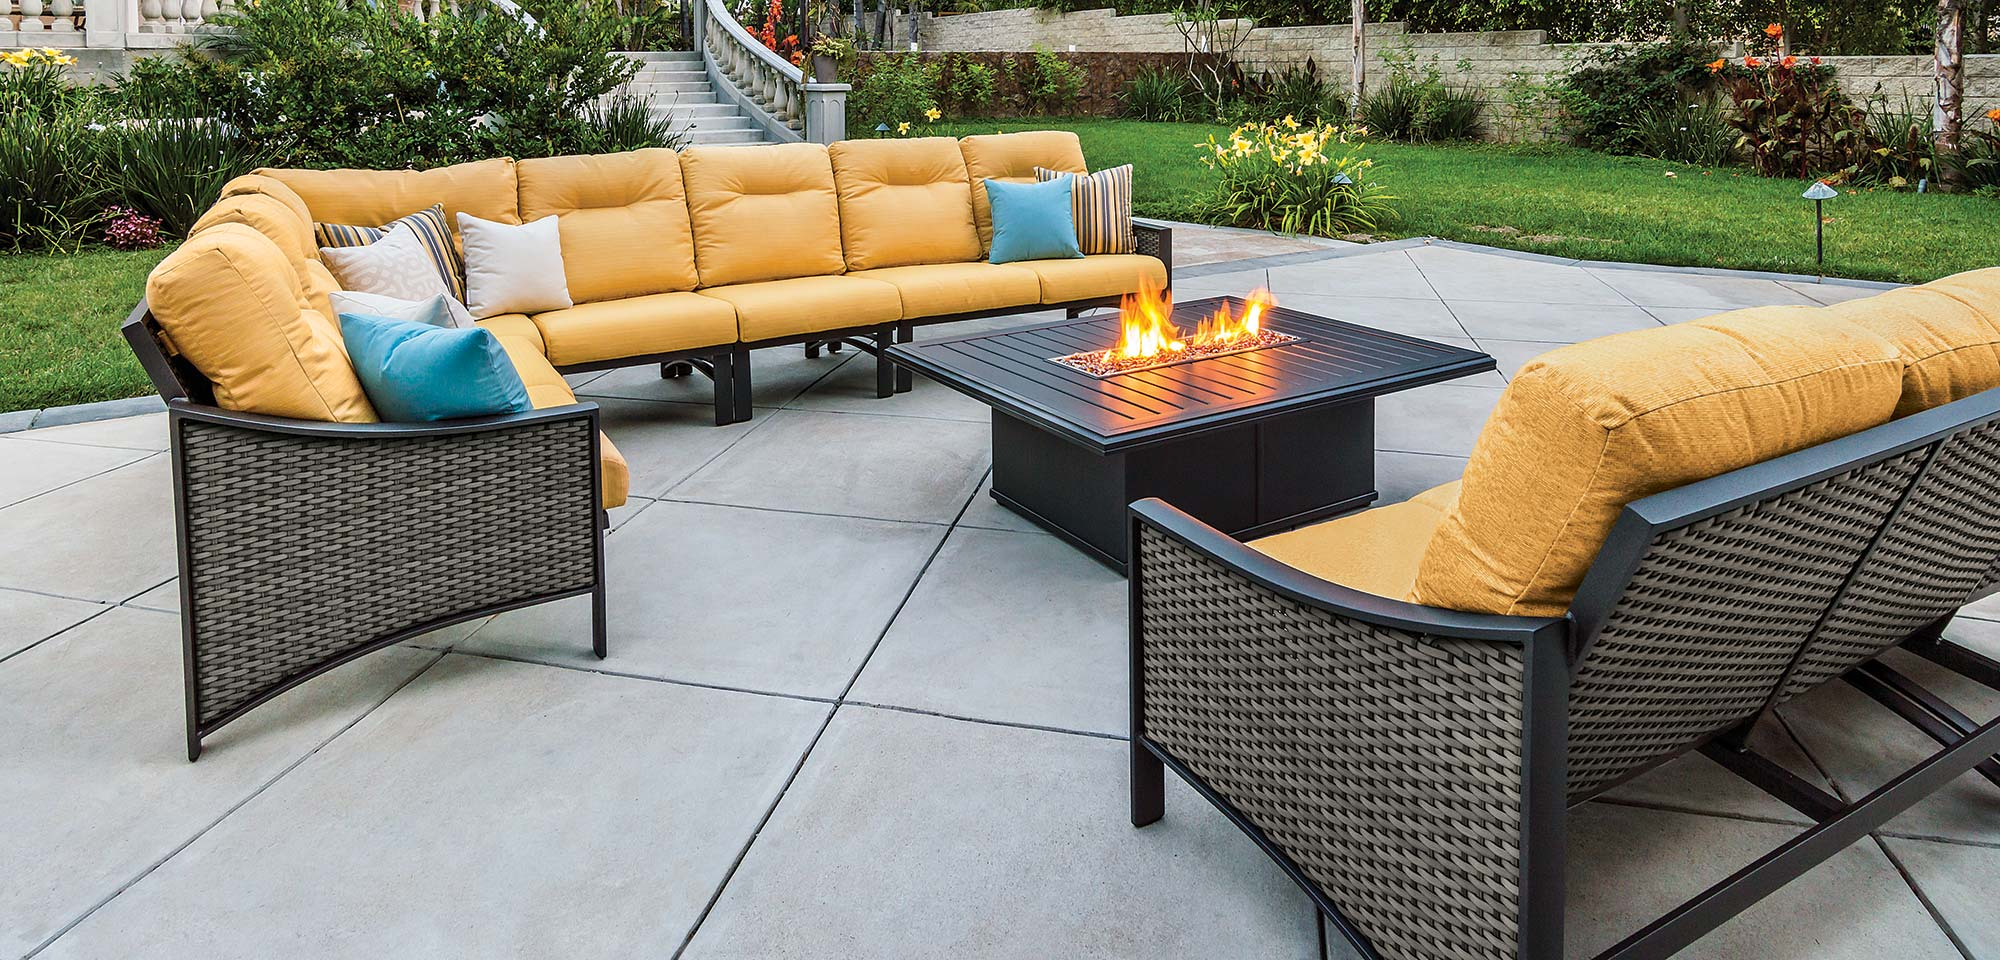 Patio Furniture Outdoor Patio Furniture Sets - Outdoor patio furniture wicker